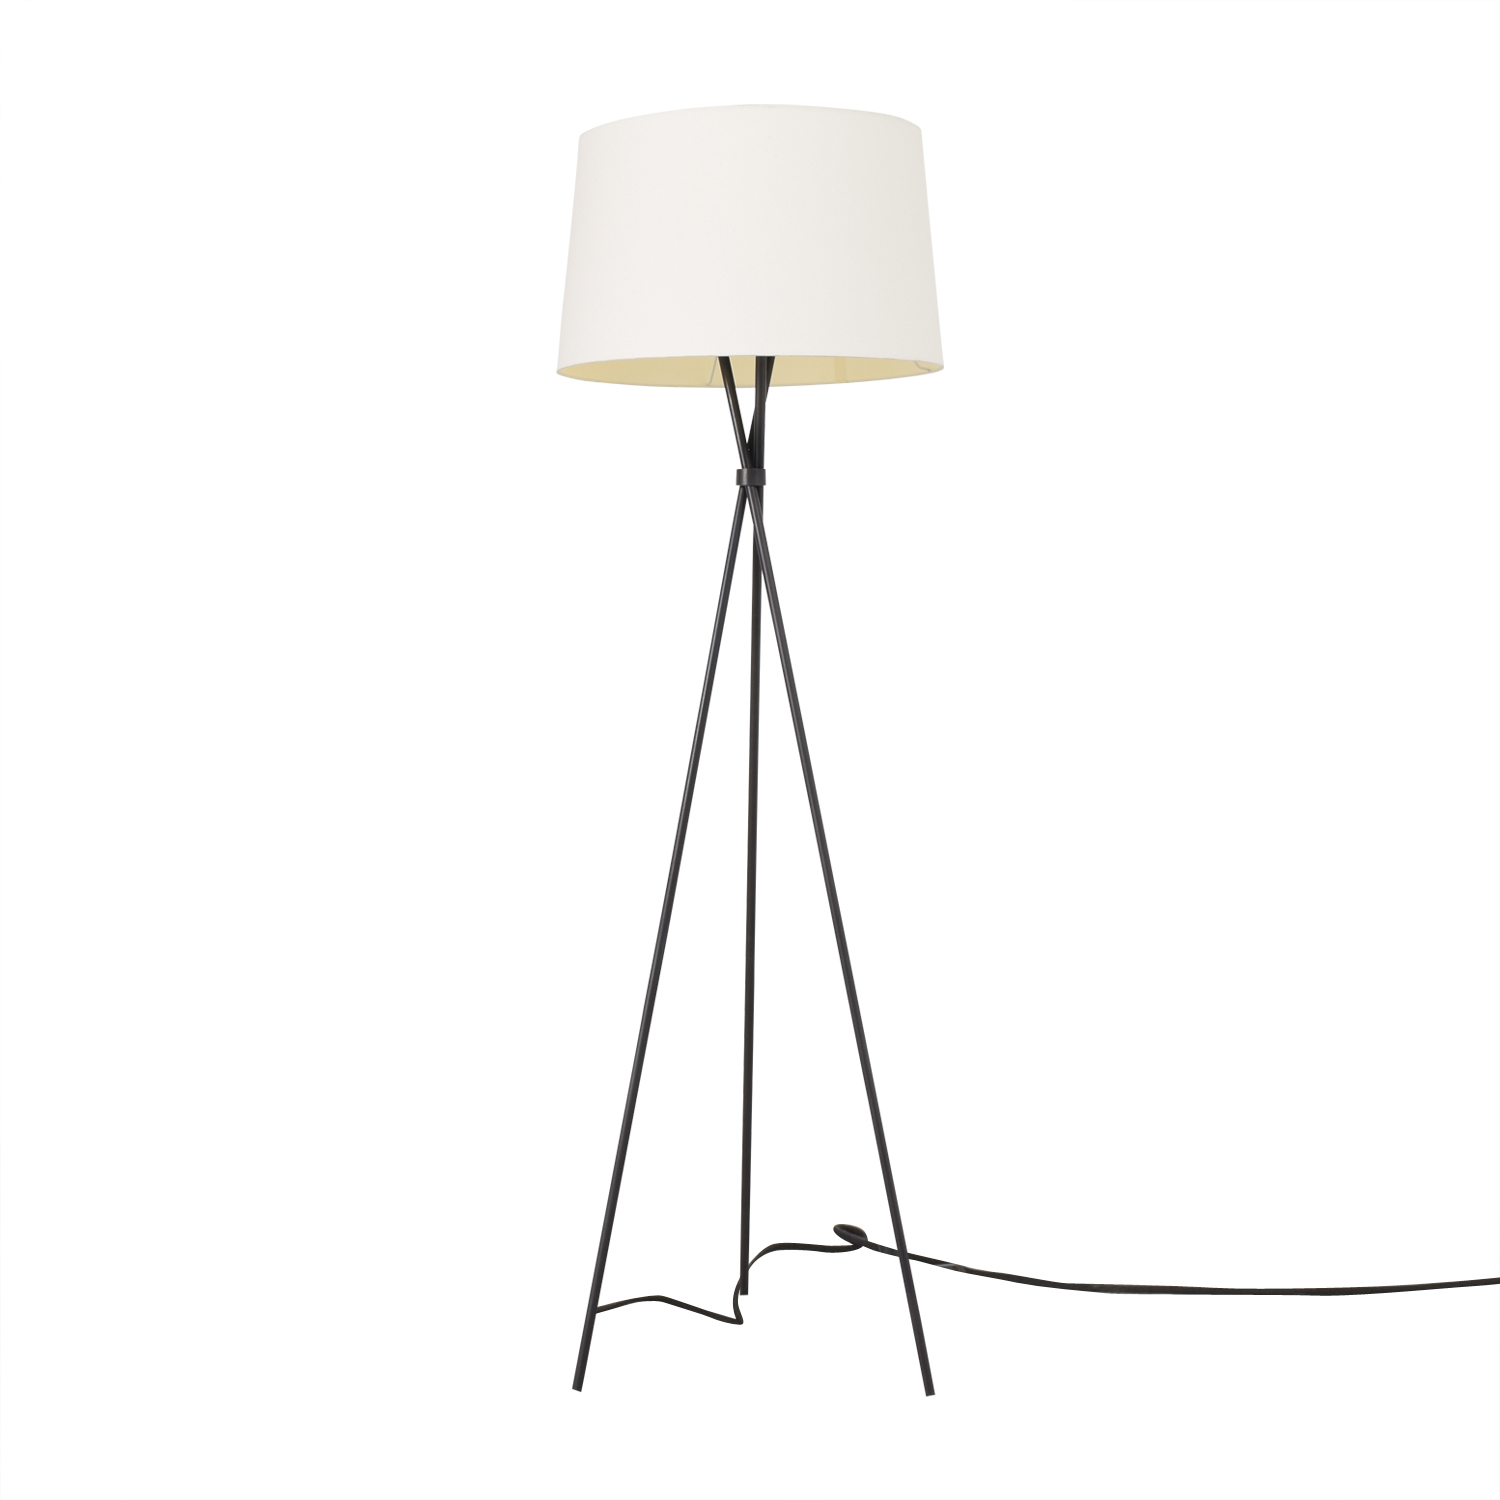 buy Room & Board Tri-Plex Floor Lamp Room & Board Lamps